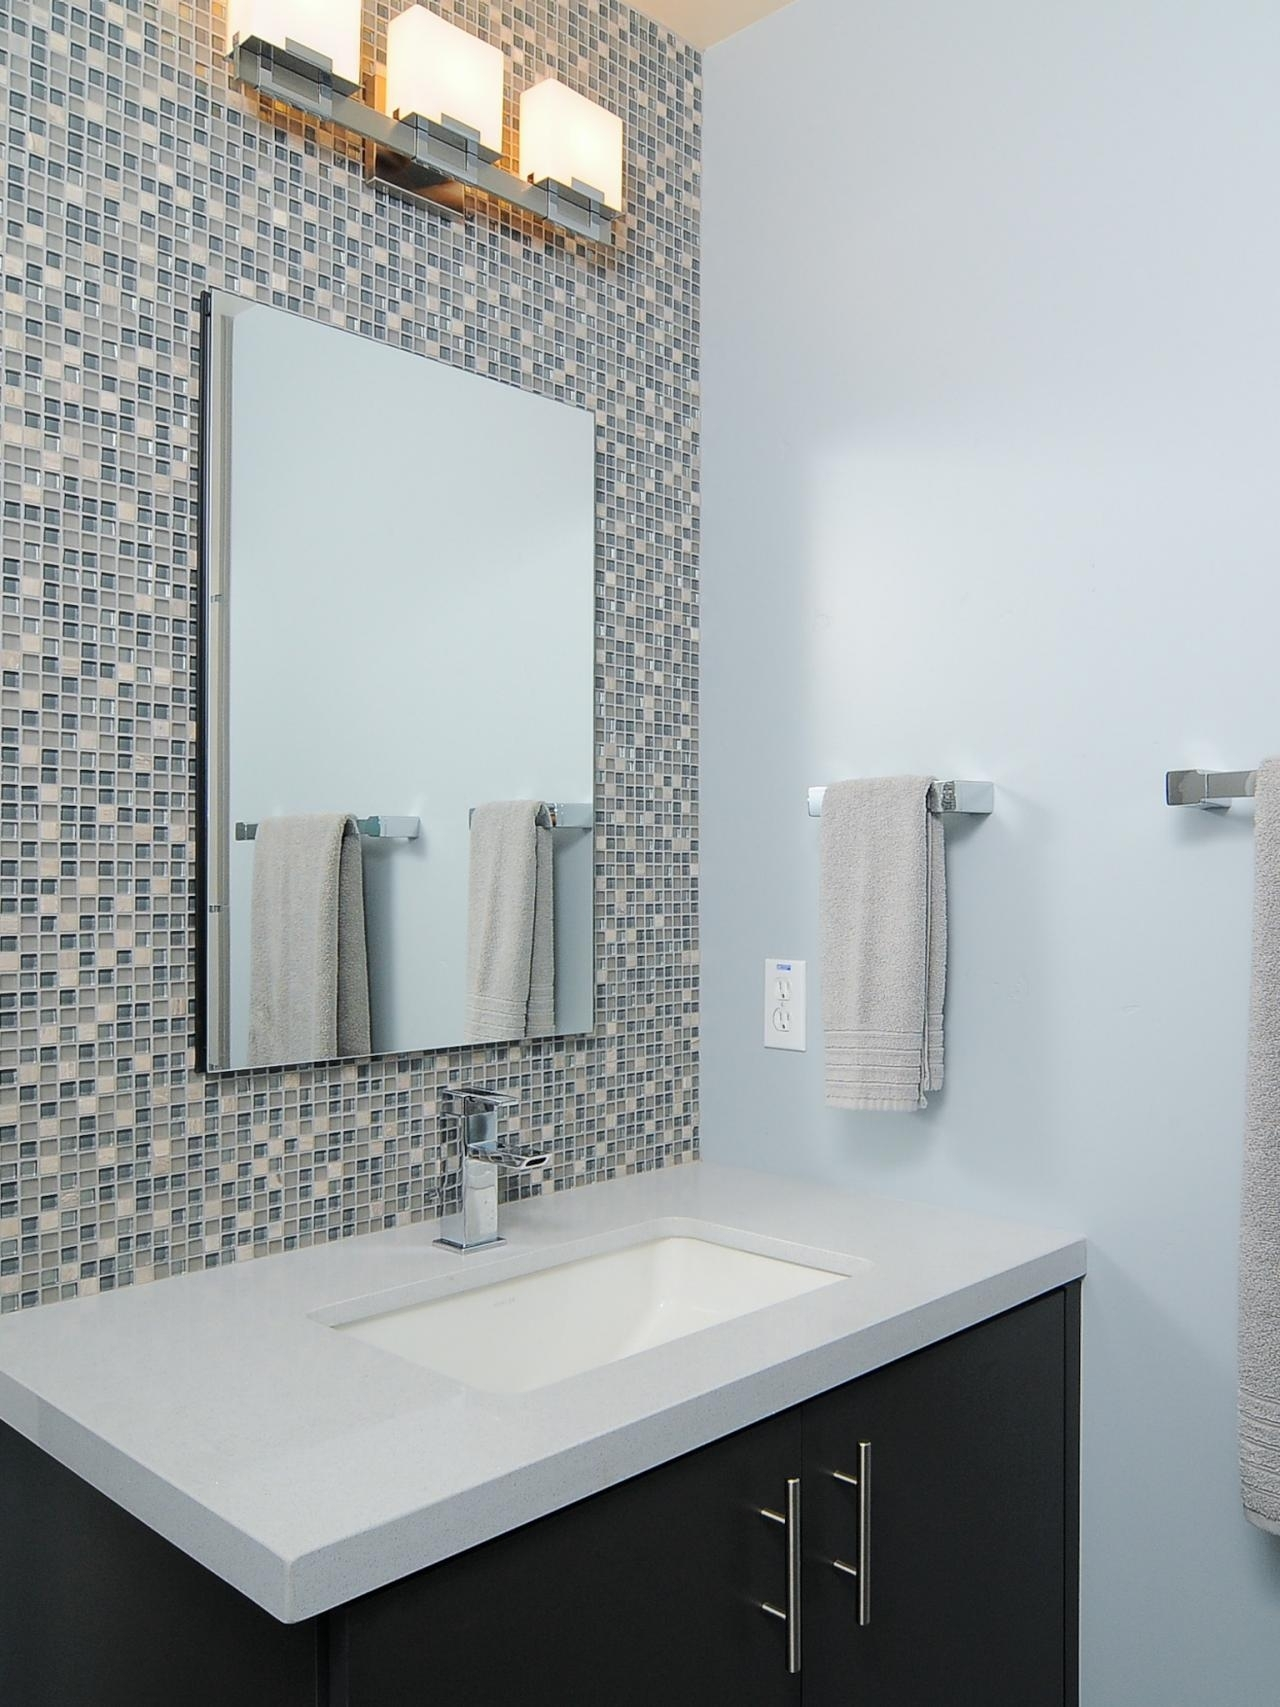 Bathroom Accent Tile | Home Design Inspiration Within Current Wall Accents For Bathroom (View 2 of 15)